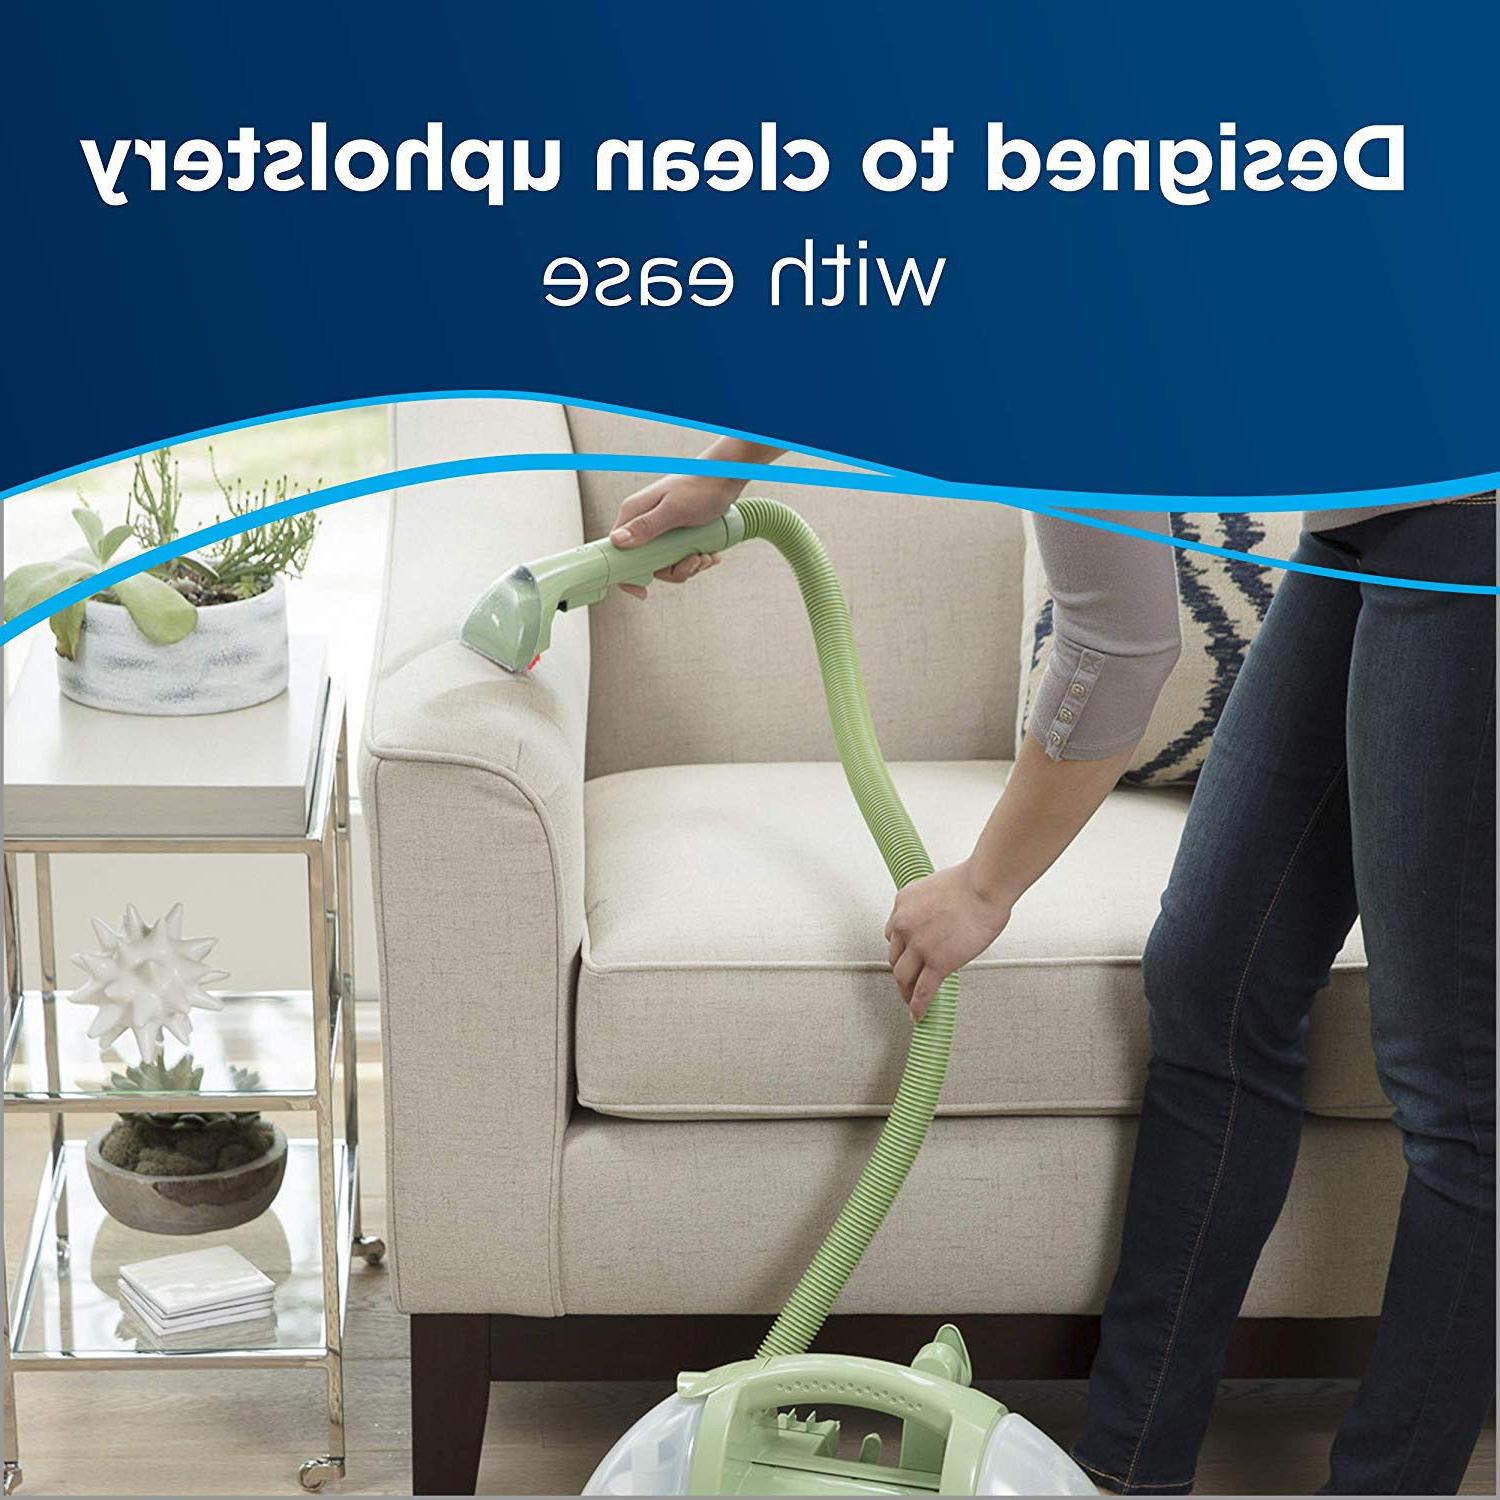 BISSELL Multi-Purpose Portable Carpet and Upholstery Cleaner- 1400B